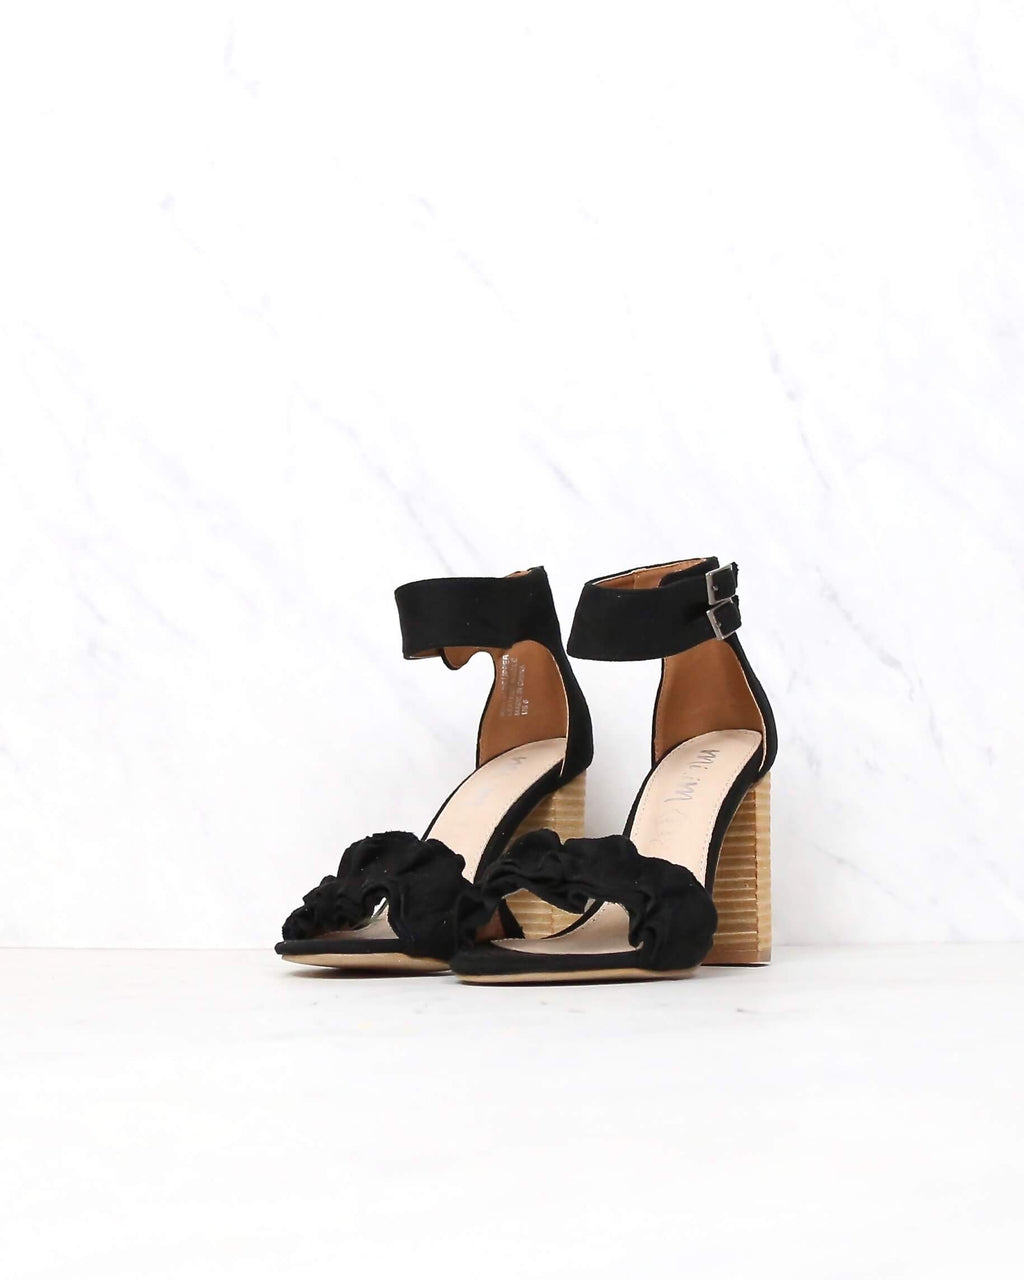 Mi.iM - emmeline - ruffle-trimmed two band heel - more colors